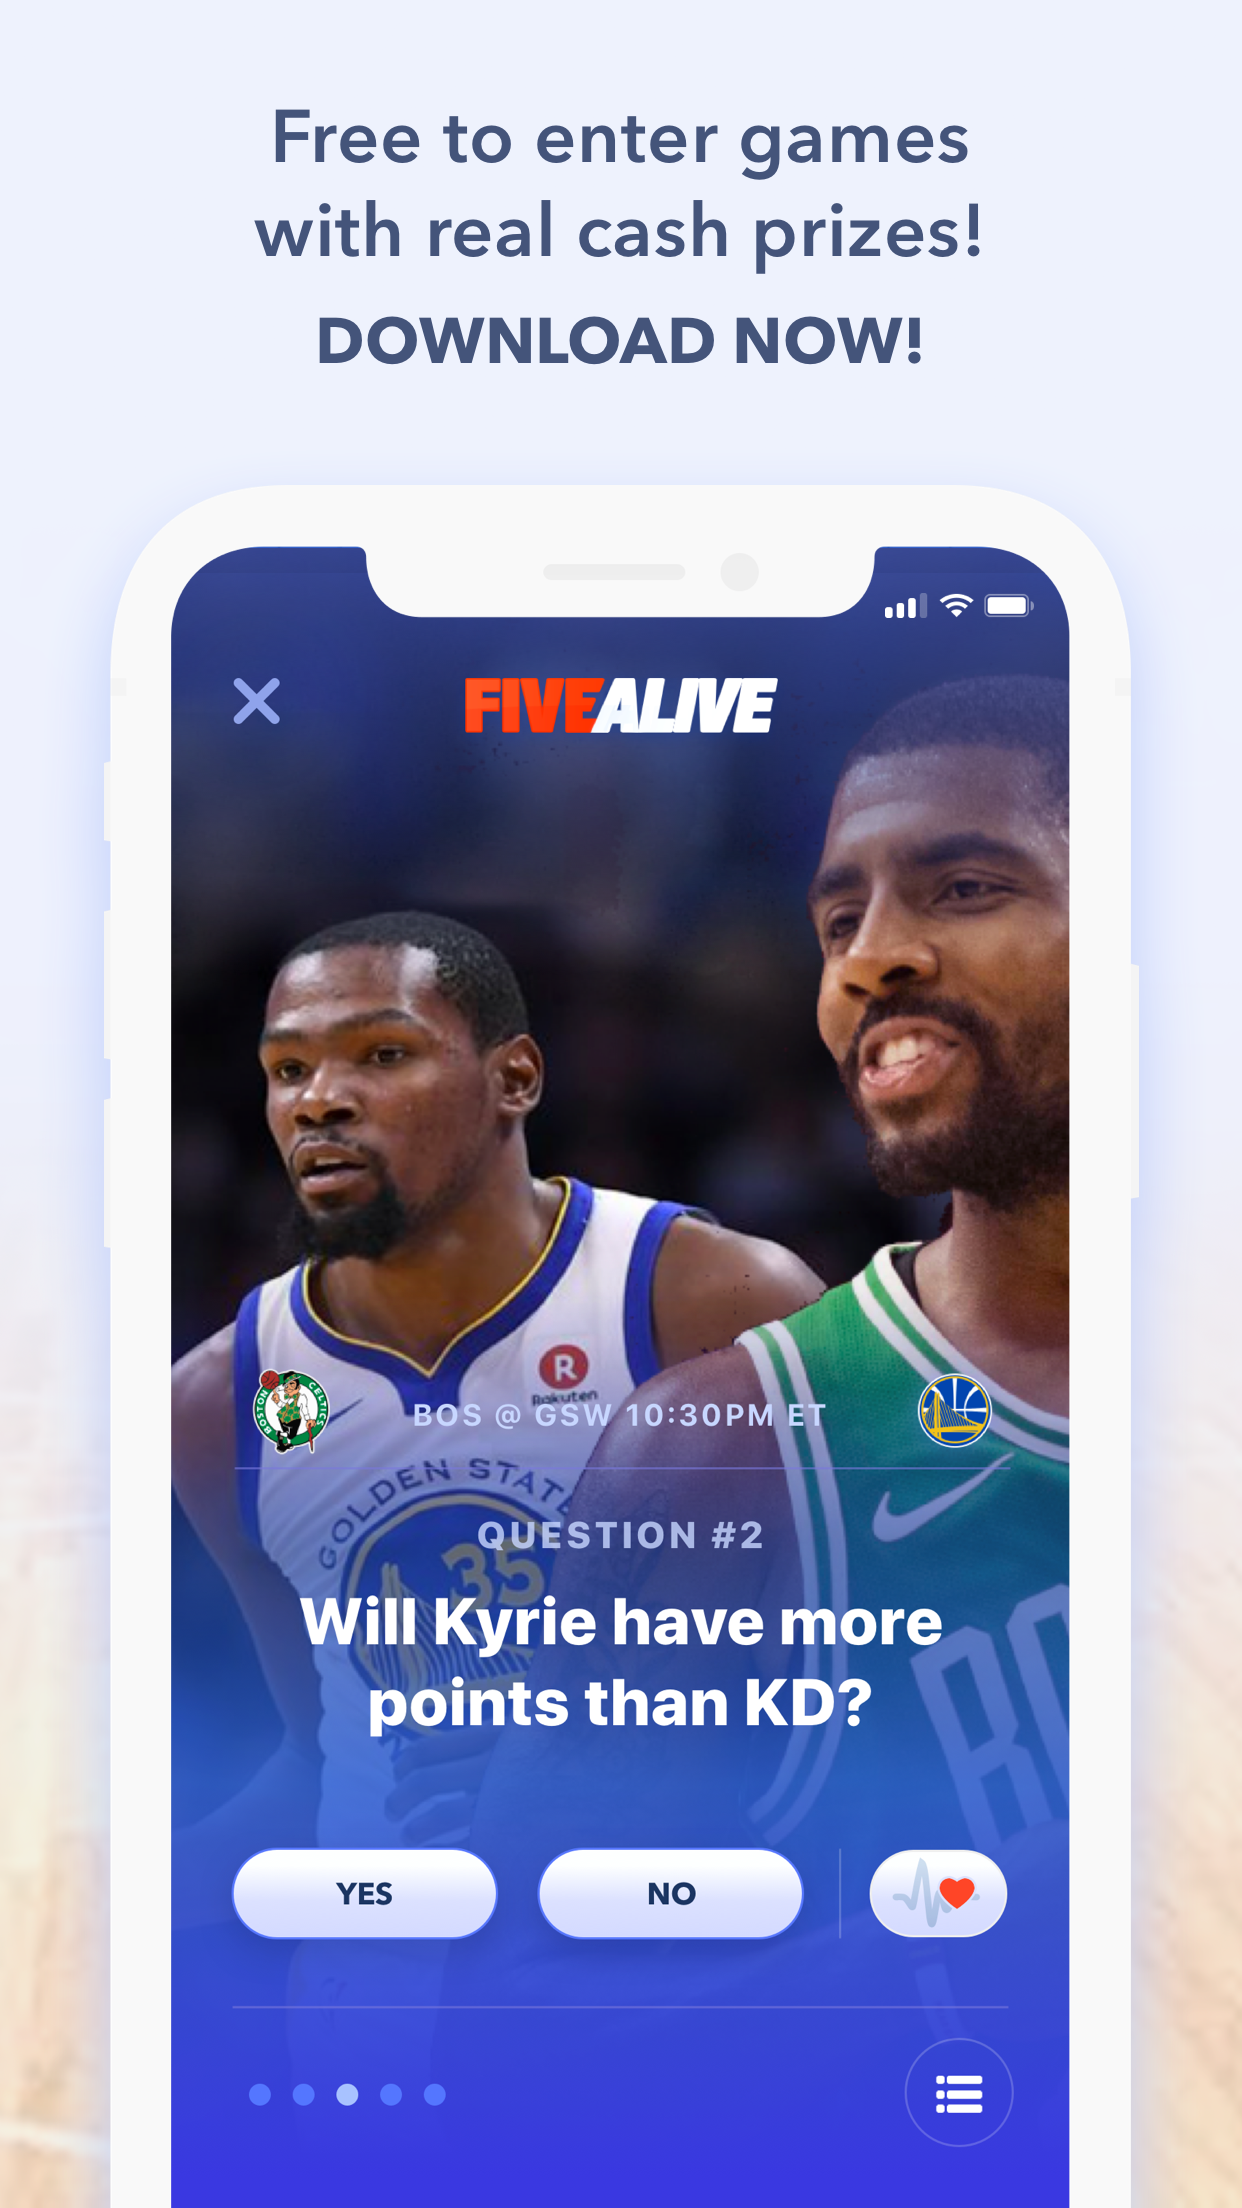 FiveAlive - The ultimate free-to-play sports contest with real cash